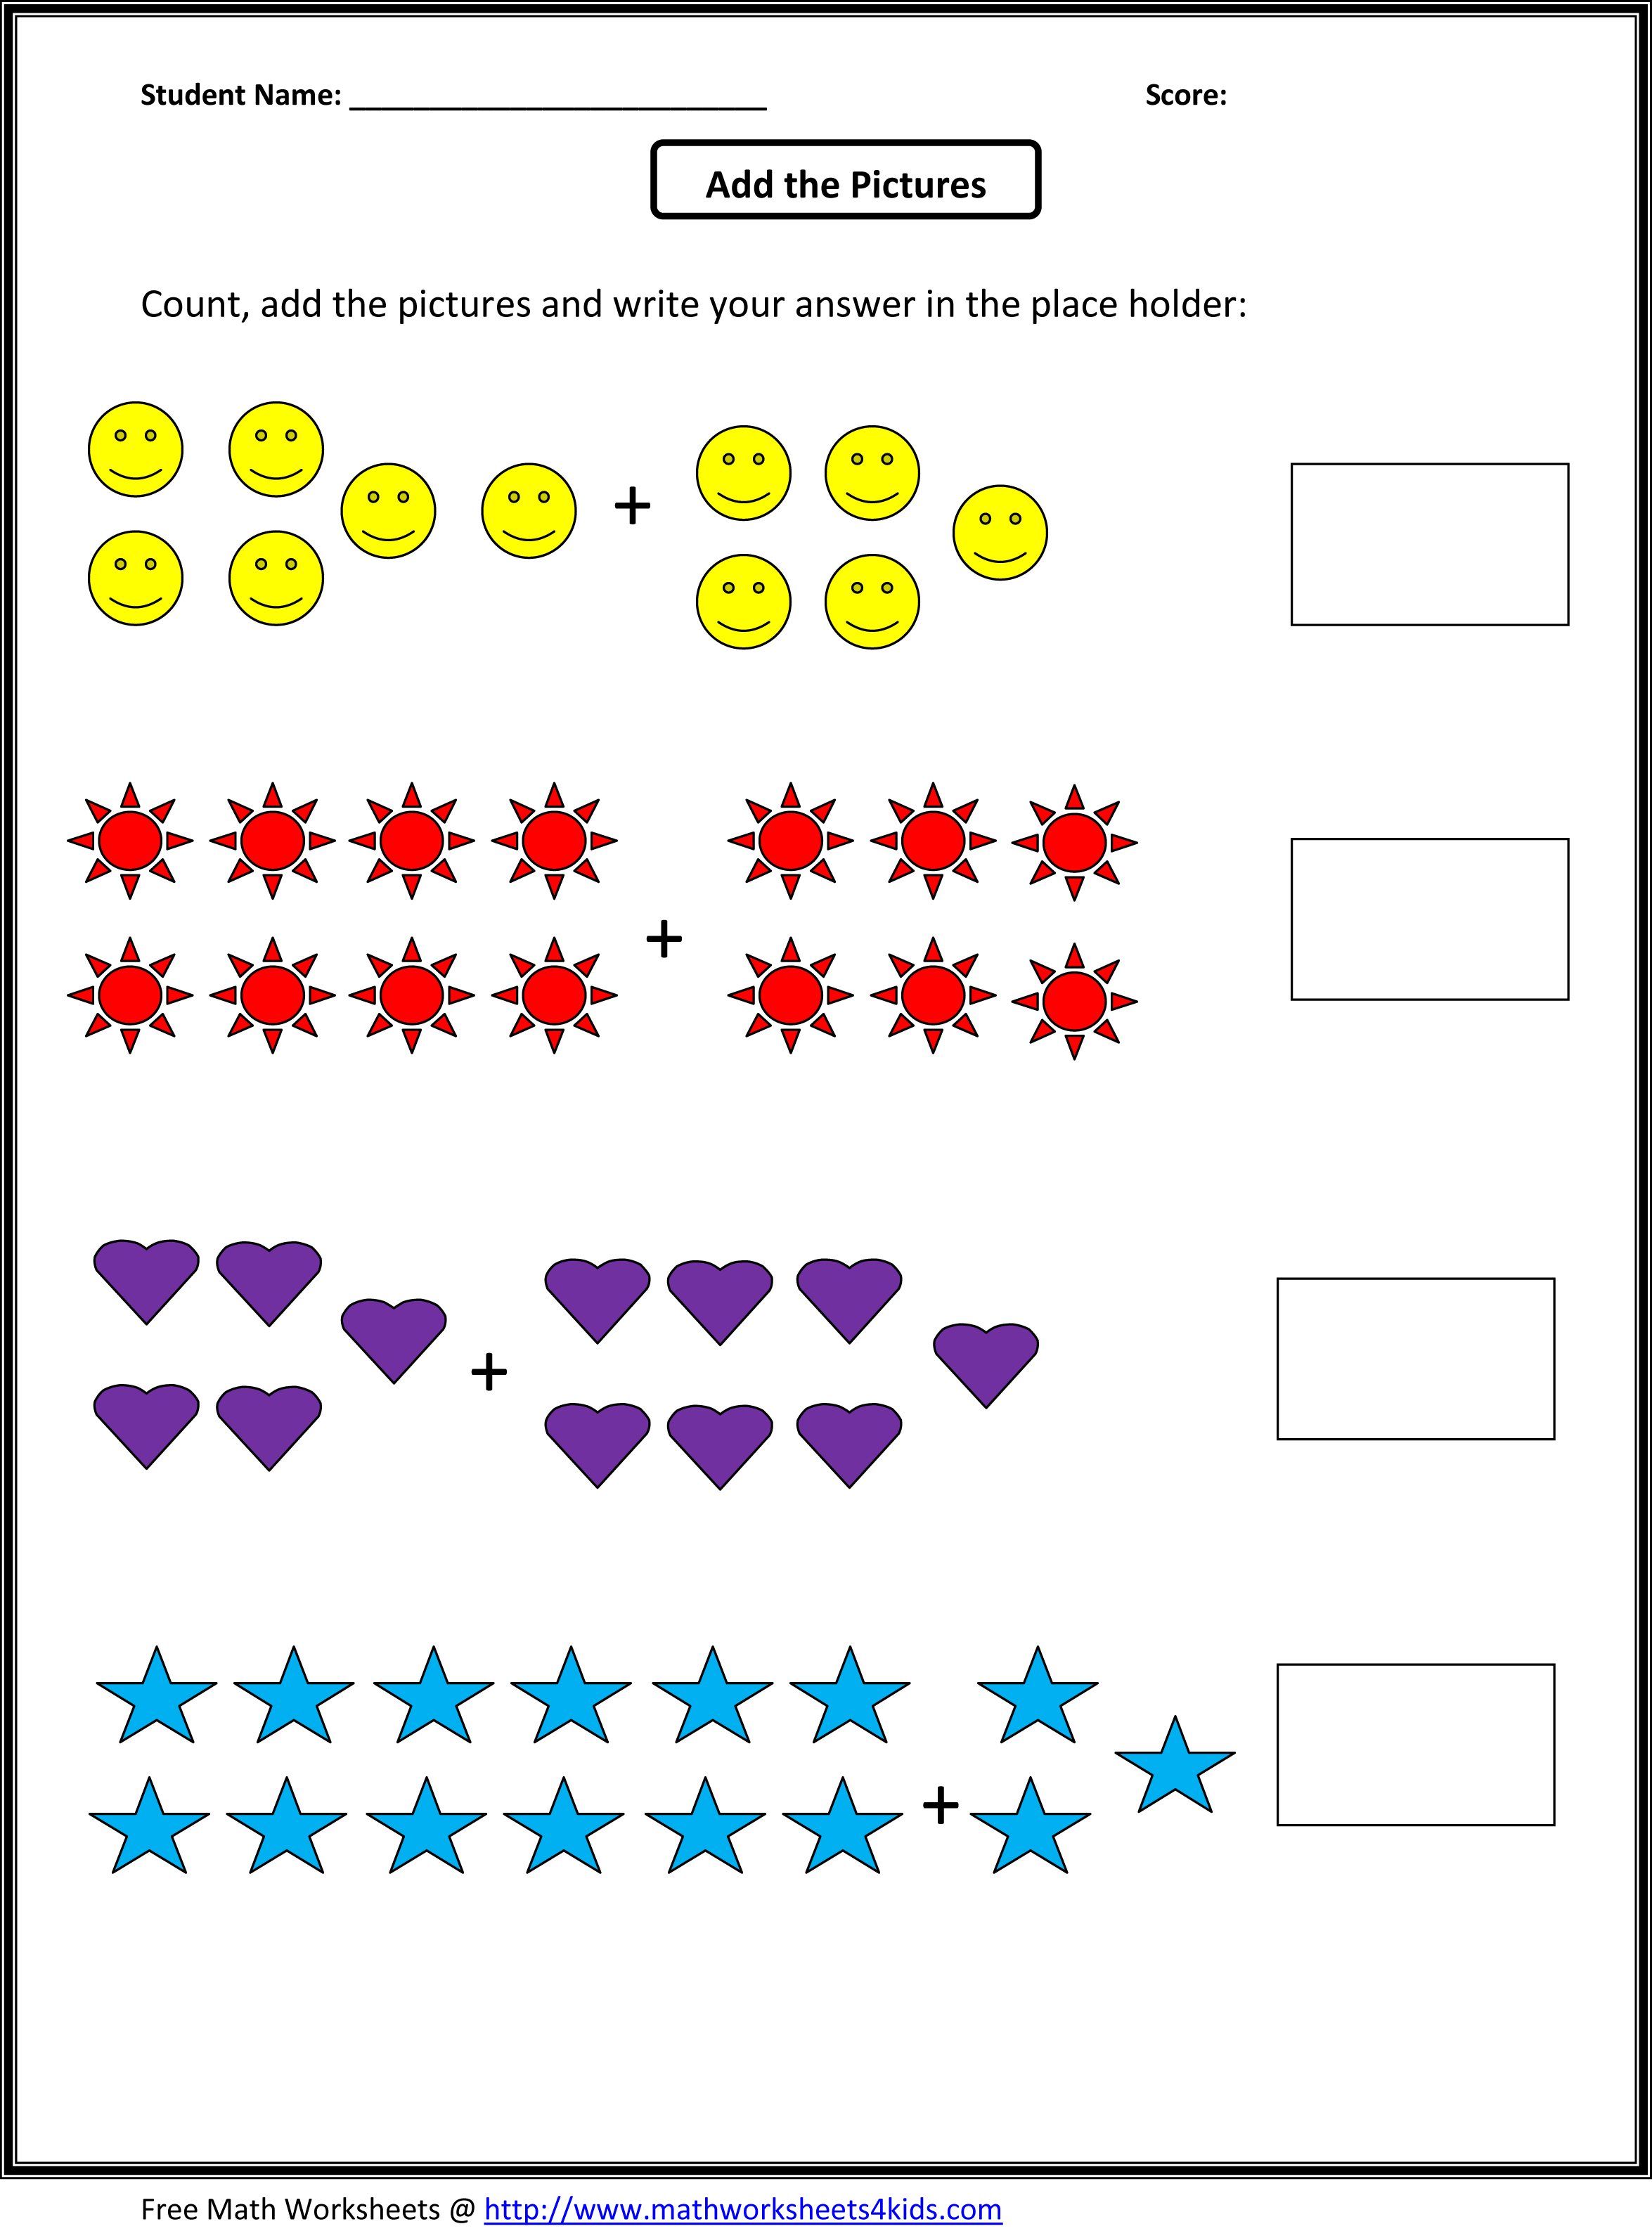 Weirdmailus  Gorgeous Grade  Maths Worksheet  Reocurent With Lovely Math Worksheets For St Grade Free  Reocurent With Cute Elementary Fractions Worksheets Also Transitive And Intransitive Worksheets In Addition Add Two Digit Numbers Worksheet And Least Common Multiples Worksheets As Well As Additive Inverse Worksheets Additionally Free Comprehension Worksheets Ks From Reocurentcom With Weirdmailus  Lovely Grade  Maths Worksheet  Reocurent With Cute Math Worksheets For St Grade Free  Reocurent And Gorgeous Elementary Fractions Worksheets Also Transitive And Intransitive Worksheets In Addition Add Two Digit Numbers Worksheet From Reocurentcom